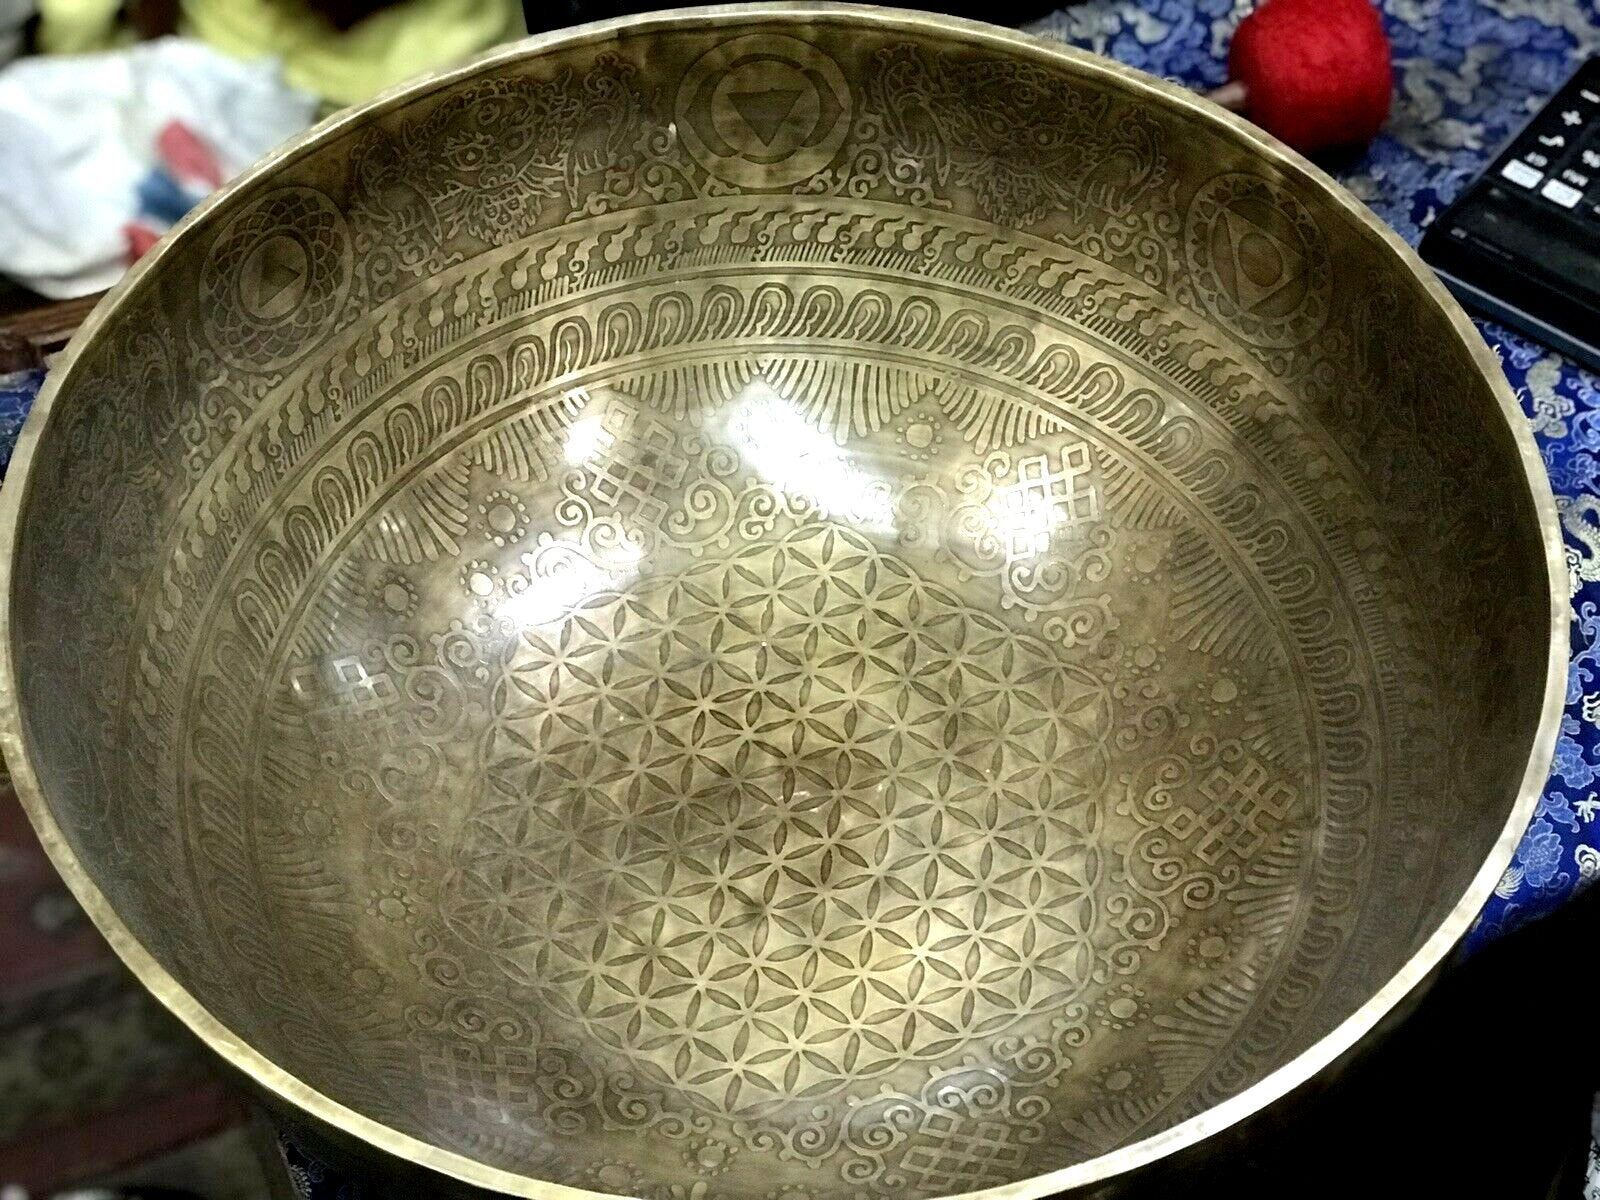 20 Inch Large Singing Bowl Flower Of Life Sound Bowl Tibetan Master Piece Best Healing Meditation Therapy Bowls Singing Bowls Handmade Bowl Handcrafted Bowls